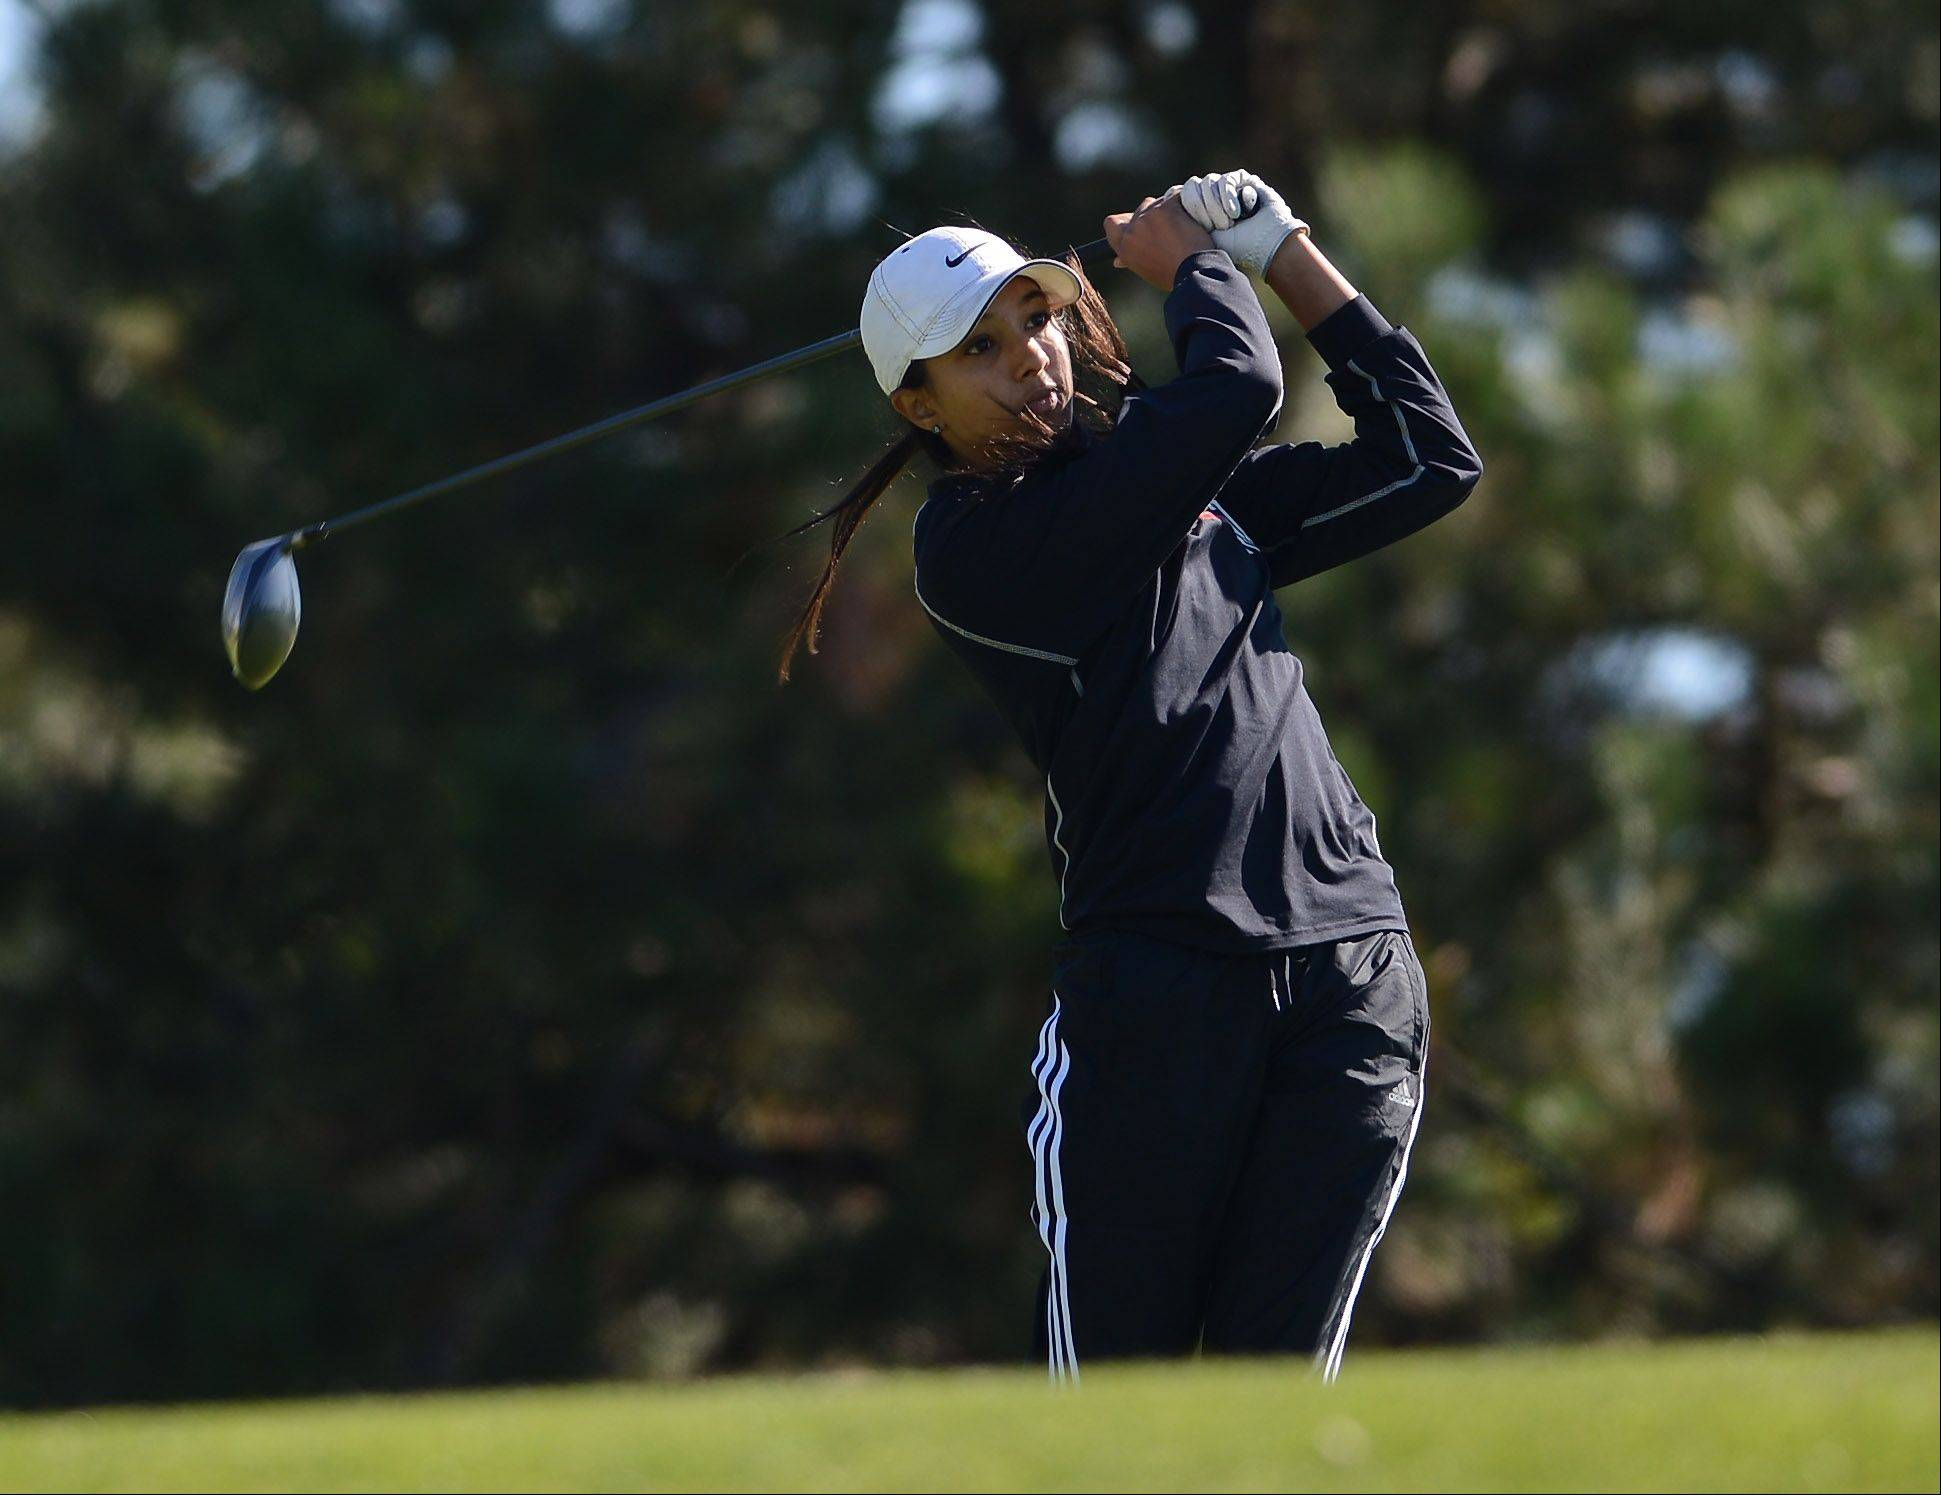 Barrington's Shivani Majmudar tees off during Wednesday's Prairie Ridge regional golf action at Prairie Isle golf course in Crystal Lake